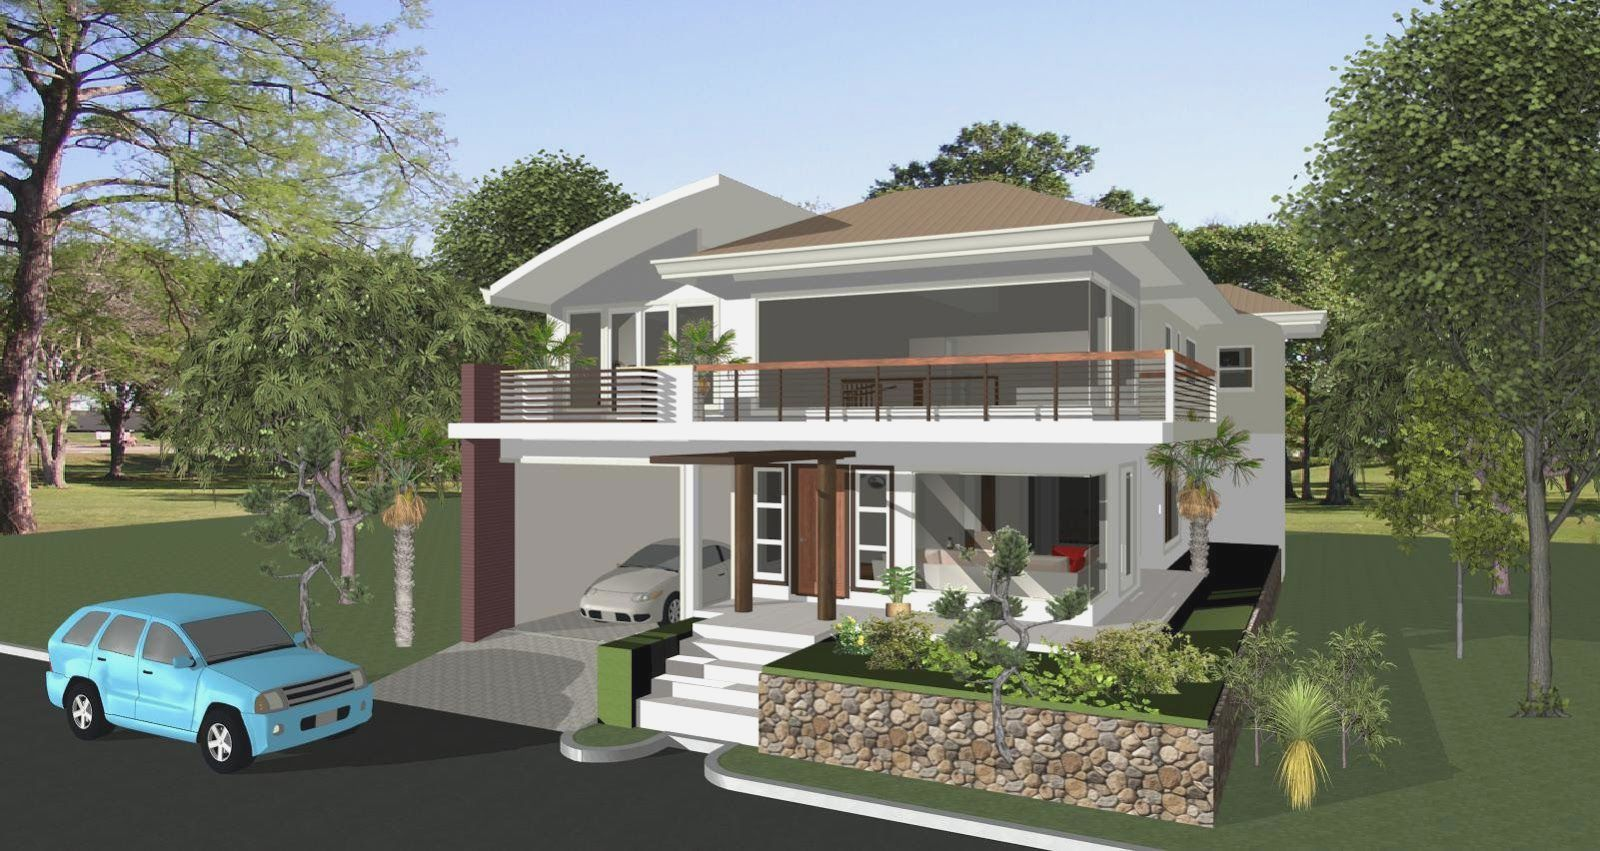 Small Modern House Plans Modern Home Design Philippines House Design Small House Exteriors Architecture House